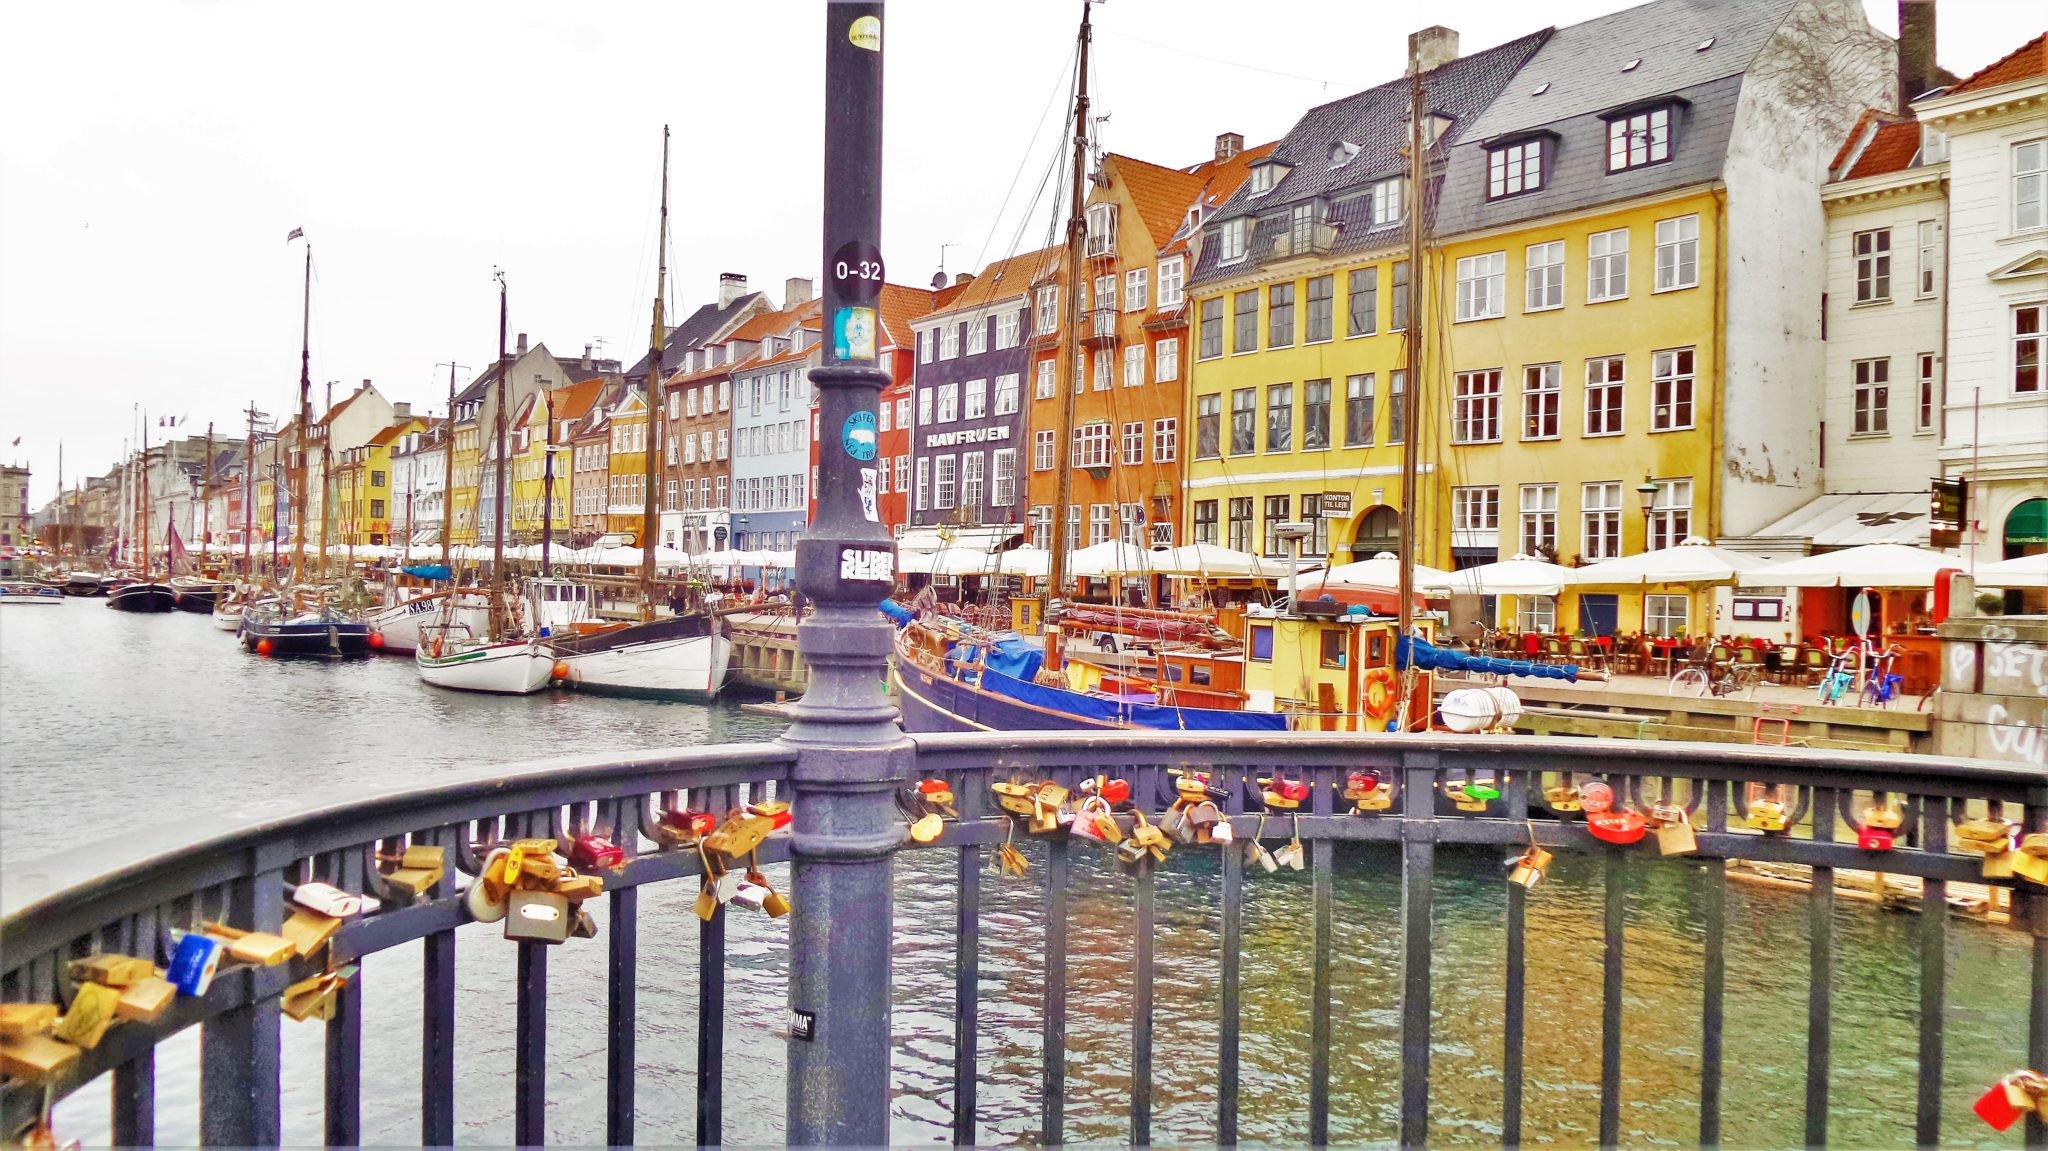 Nyhavn love lock bridge, Copenhagen, Denmark